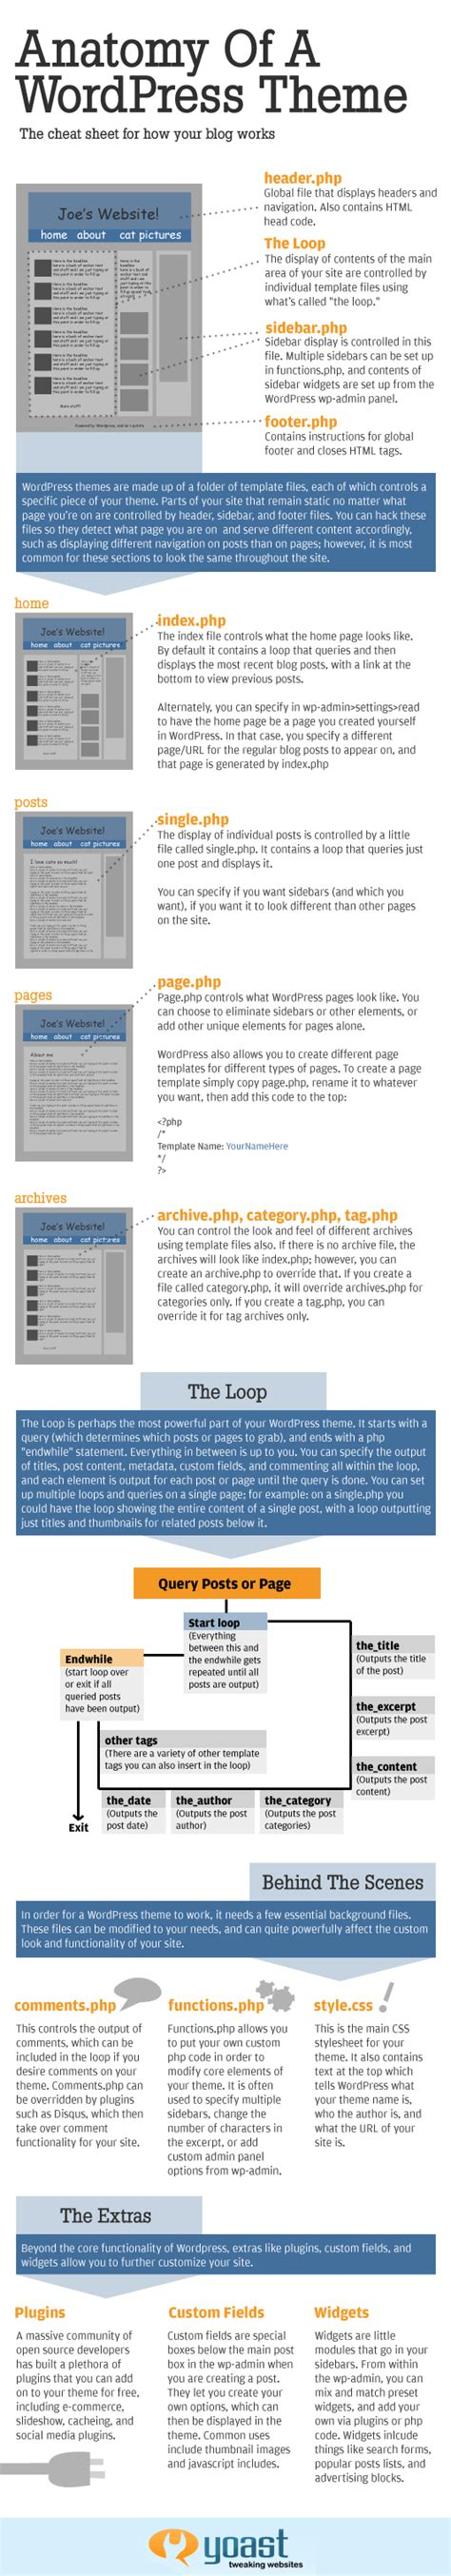 wordpress theme hierarchy rick s code